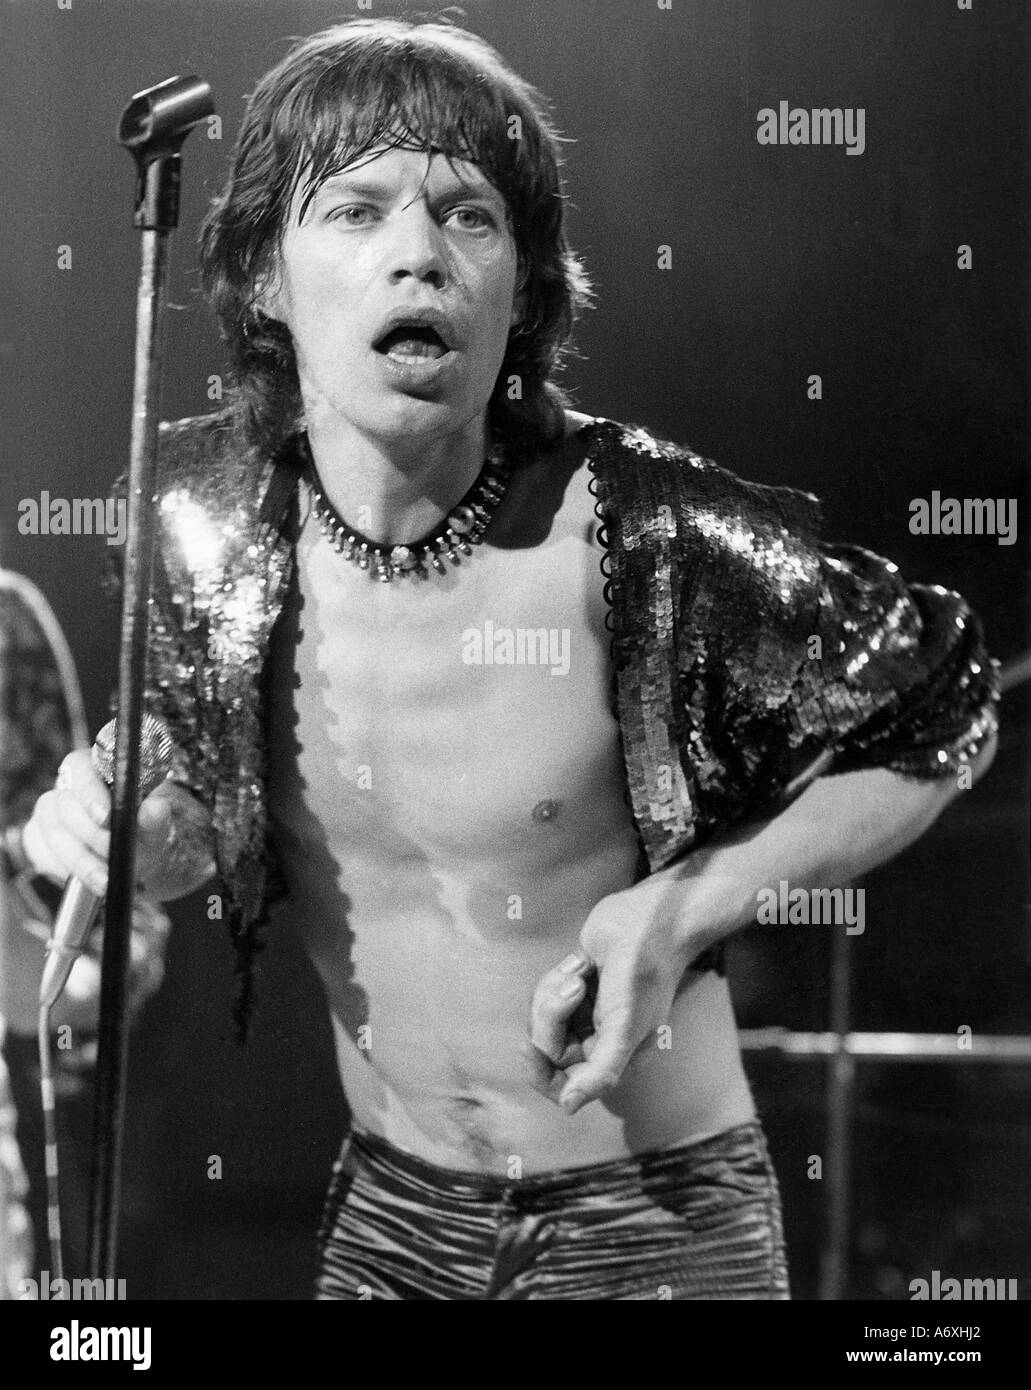 ROLLING STONES Mick Jagger in July 1973 Stock Photo: 6665953